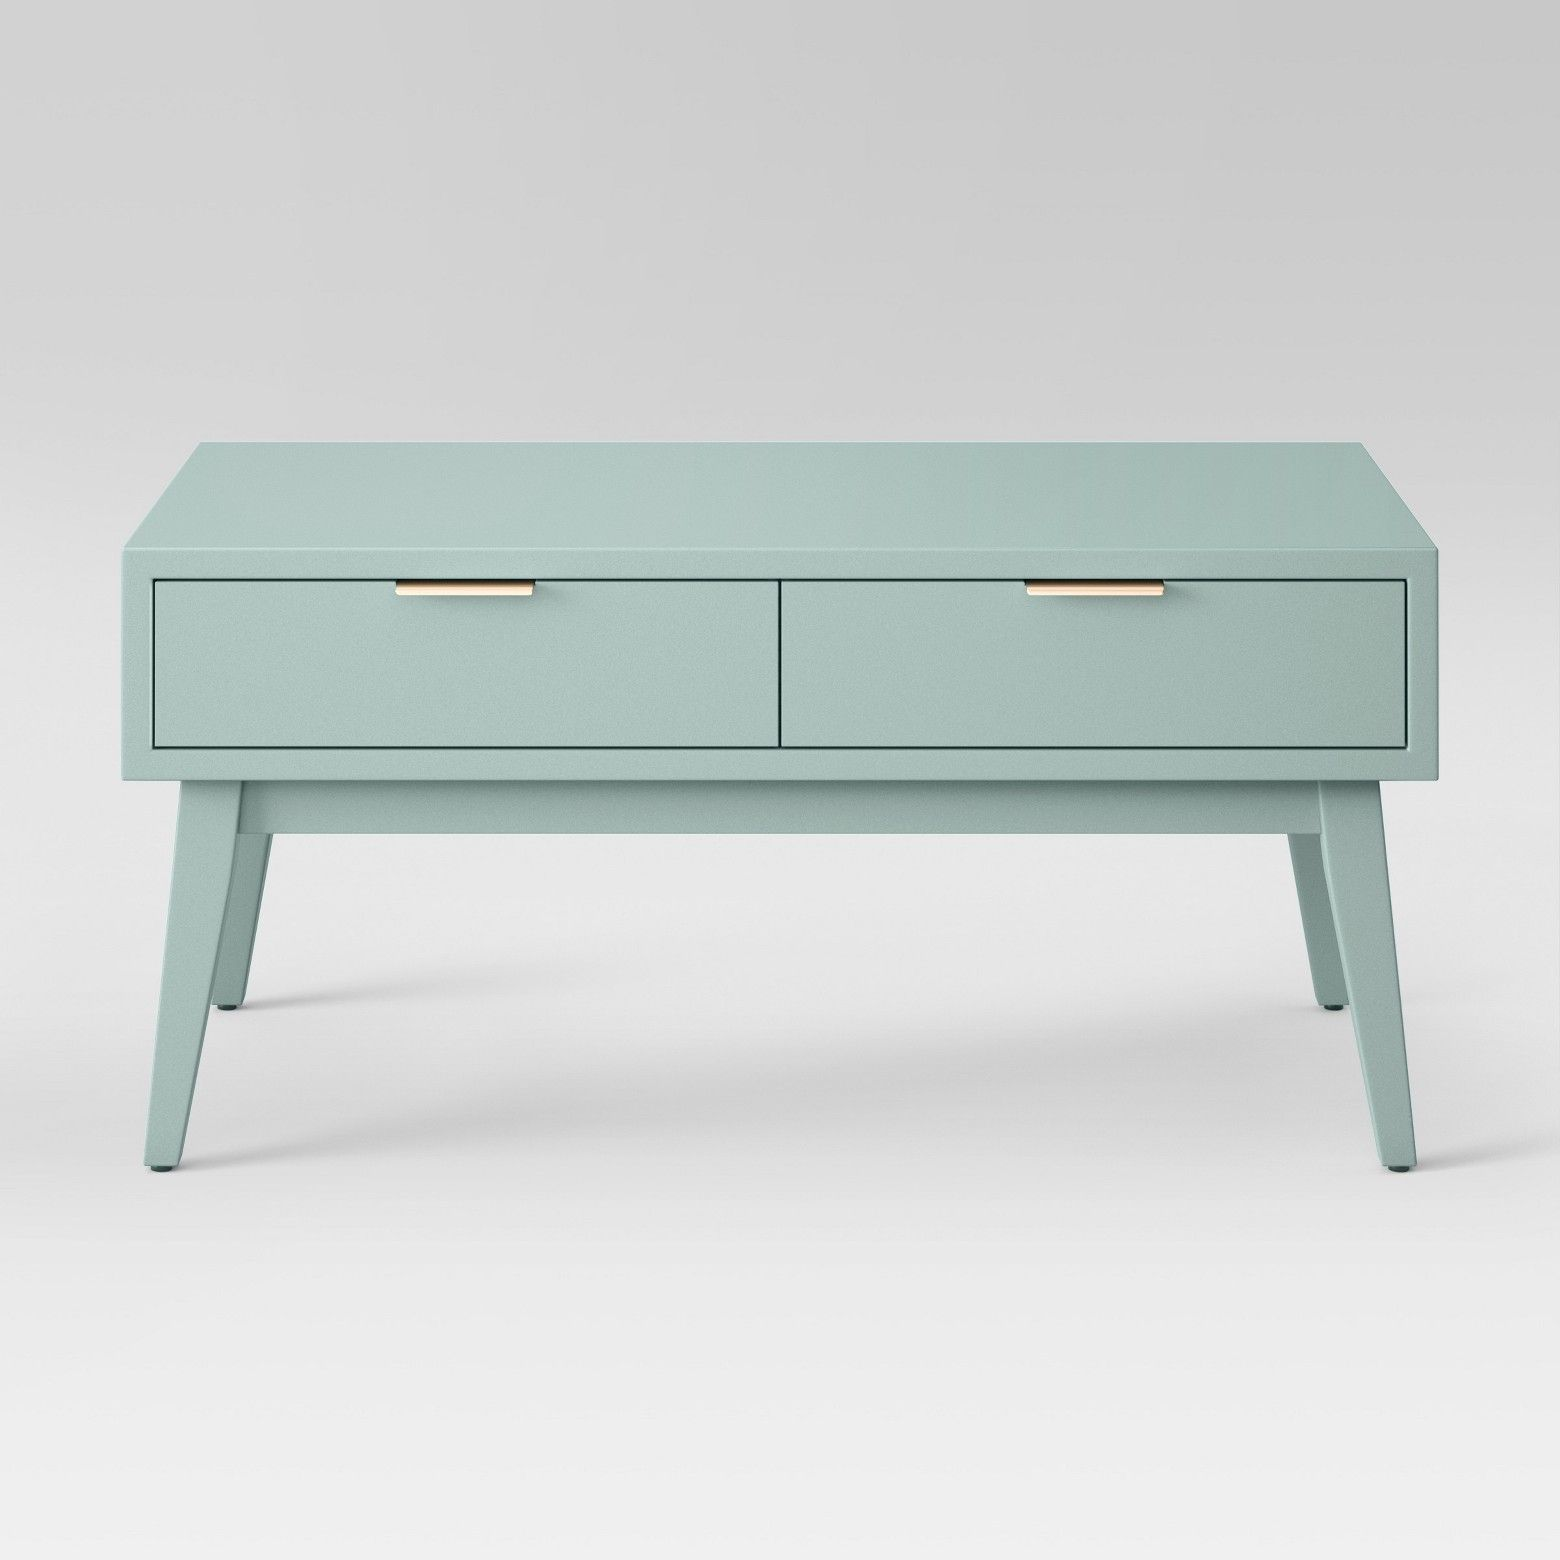 Soft Coffee Table With Storage Hafley Coffee Table Smoke Green Project 62 Apartment